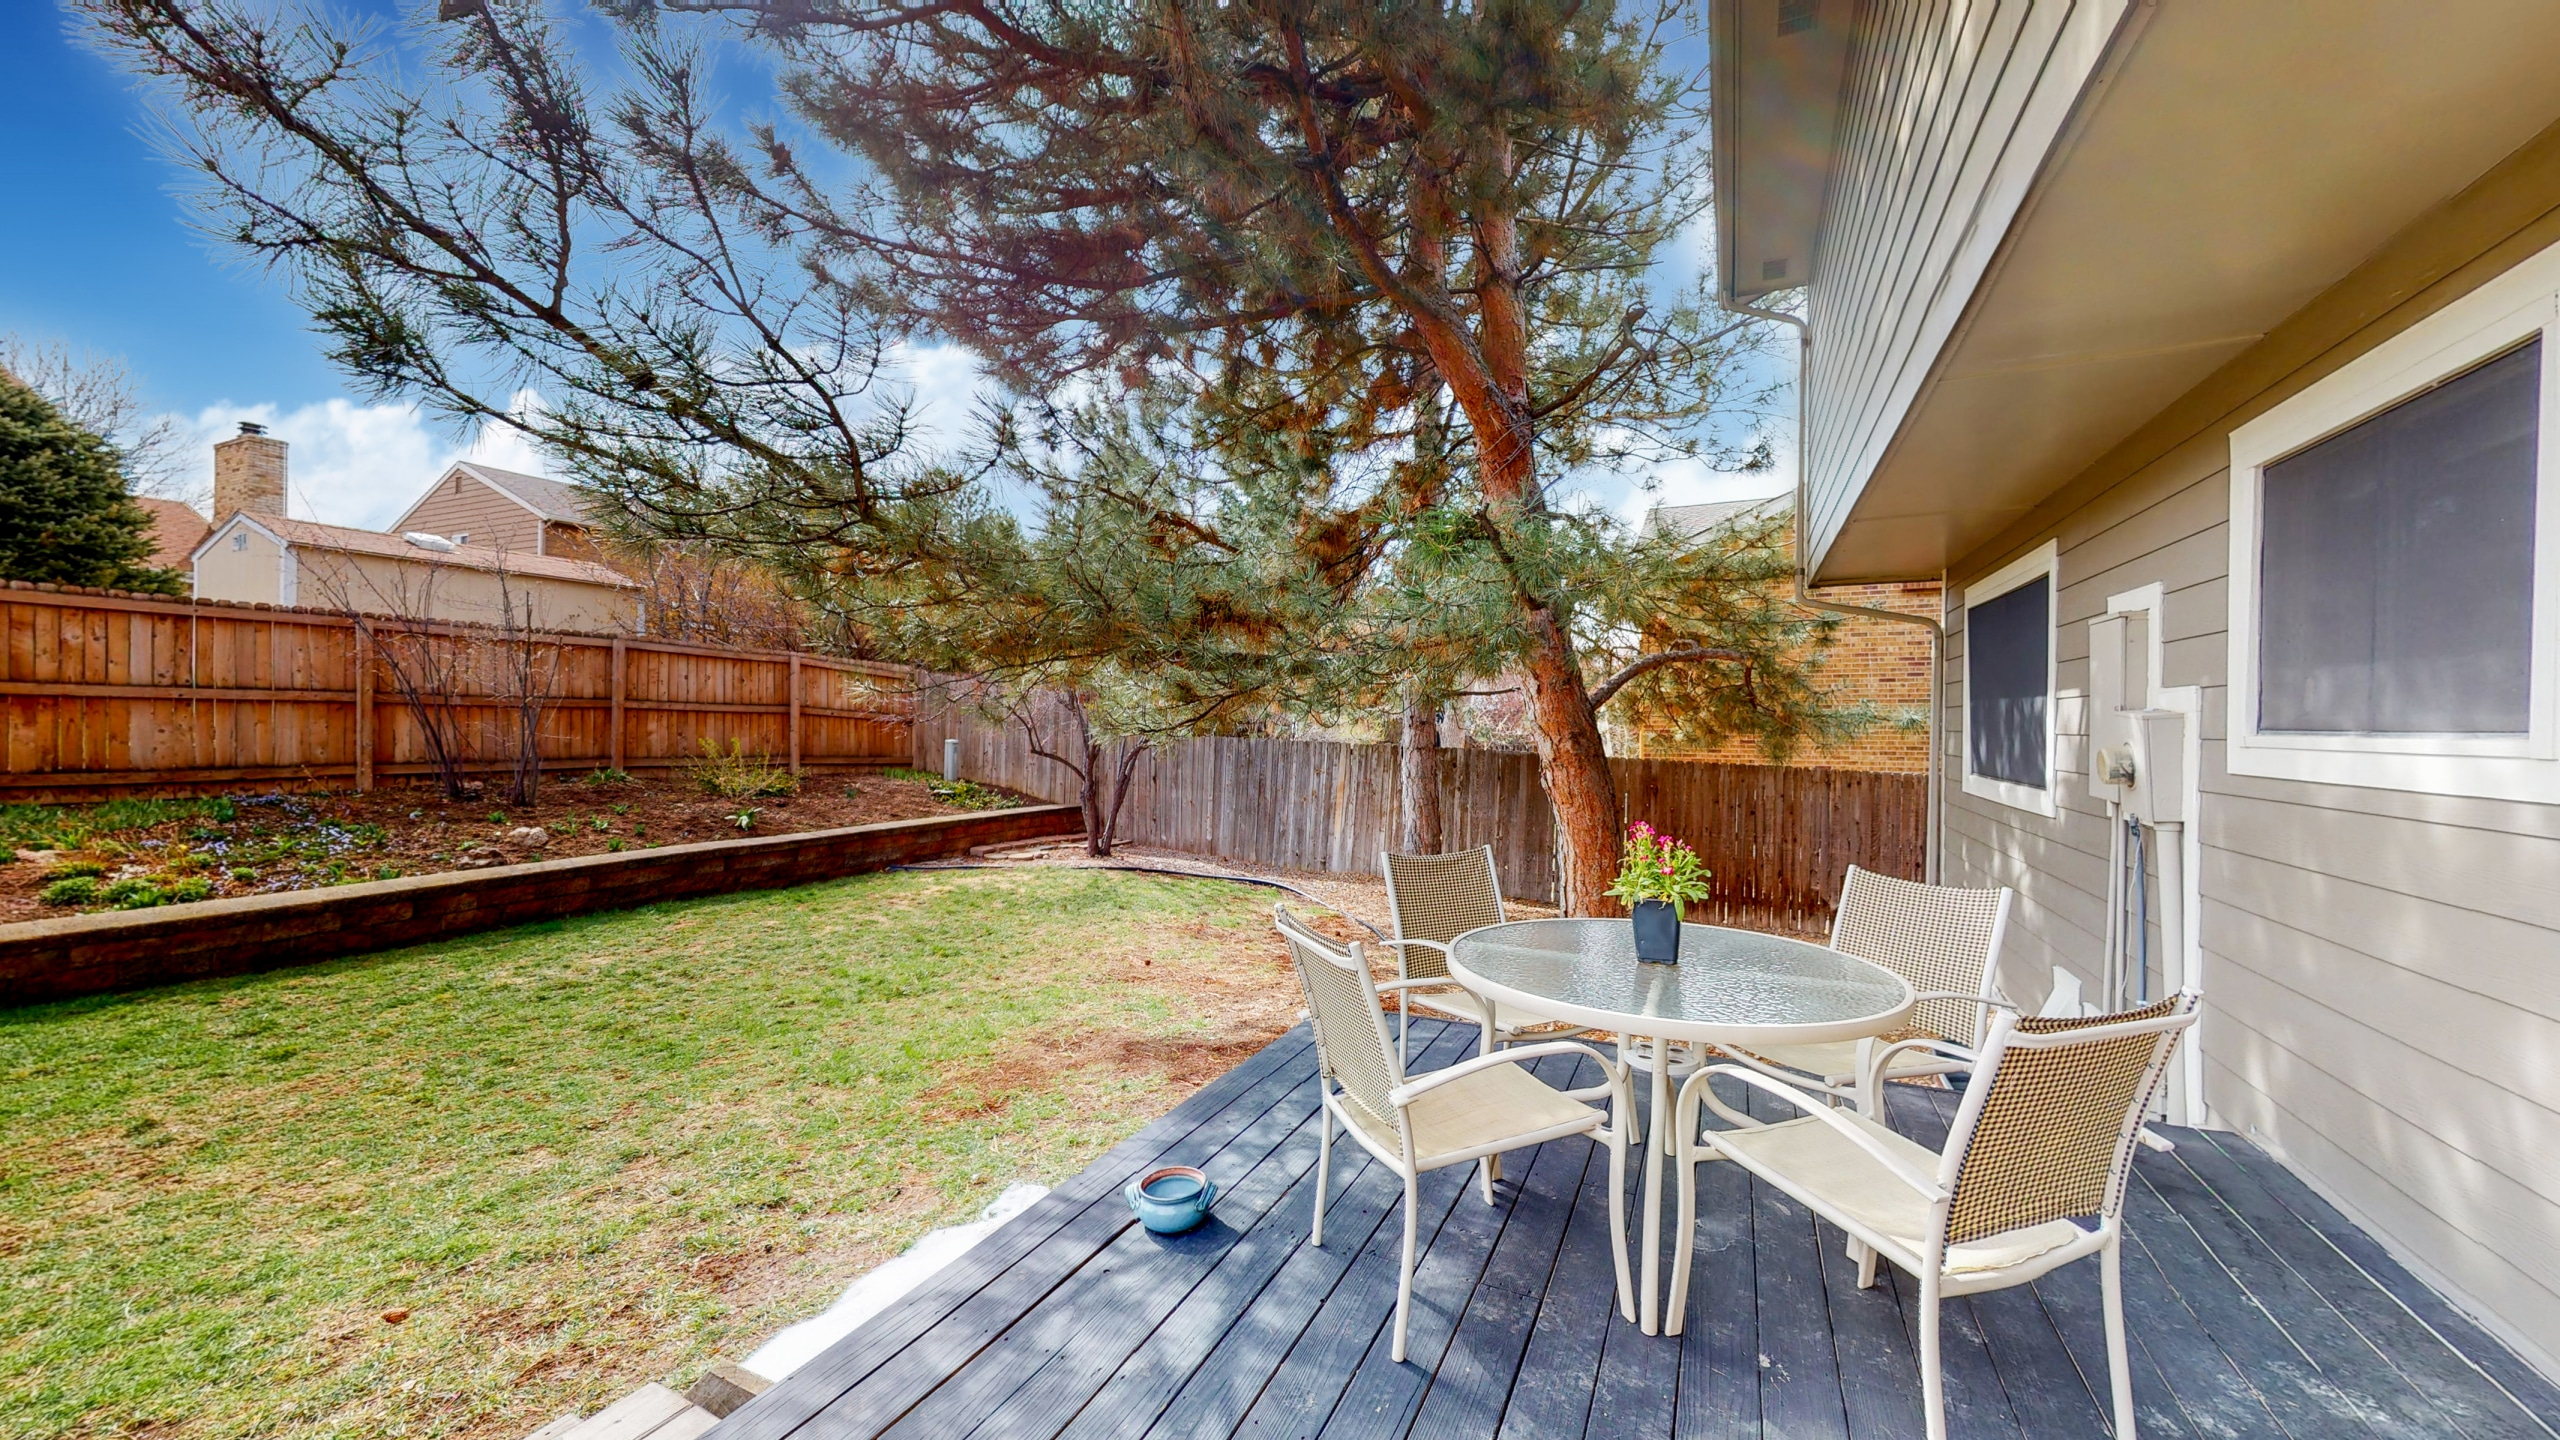 Backyard with large deck and big trees